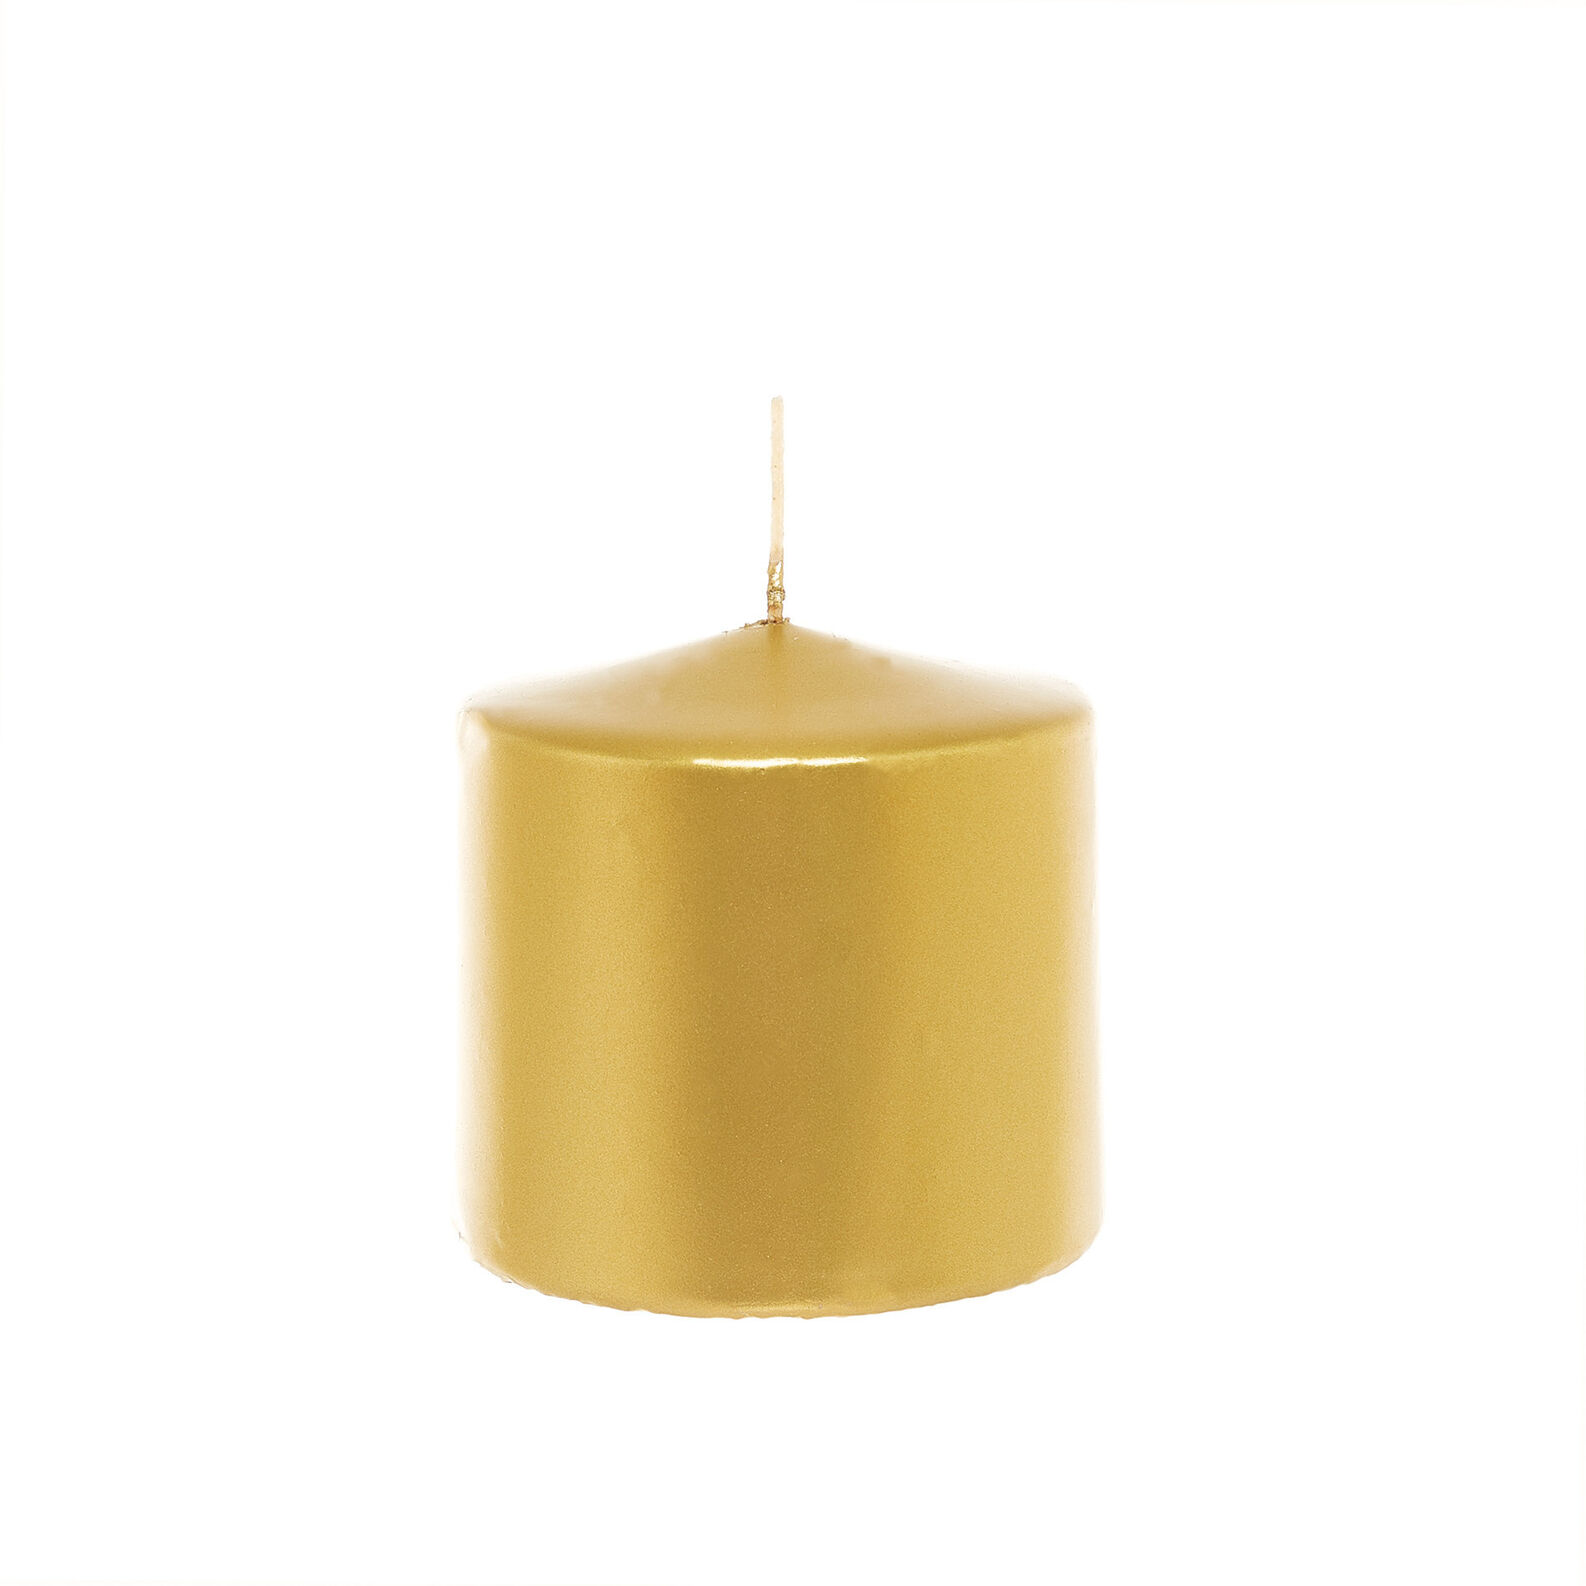 H10 cylindrical candle made in Italy